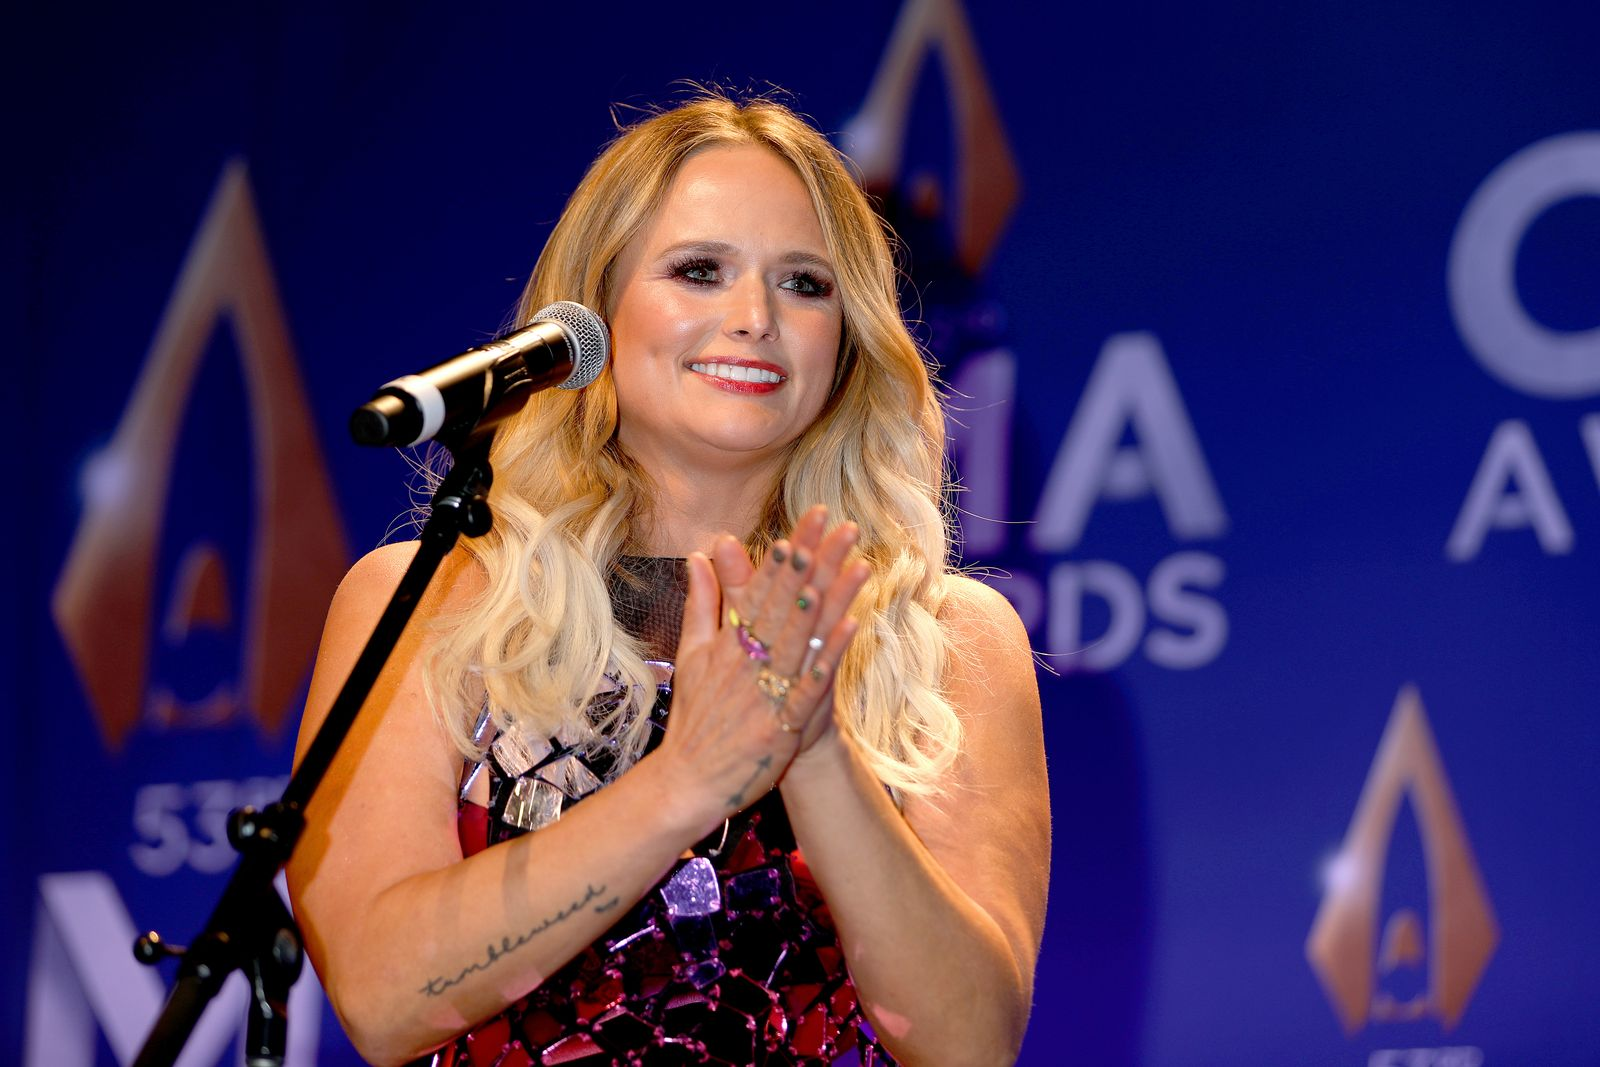 Miranda Lambert at the press room of the 53rd annual CMA Awards at the Bridgestone Arena on November 13, 2019 in Nashville, Tennessee. | Photo: Getty Images